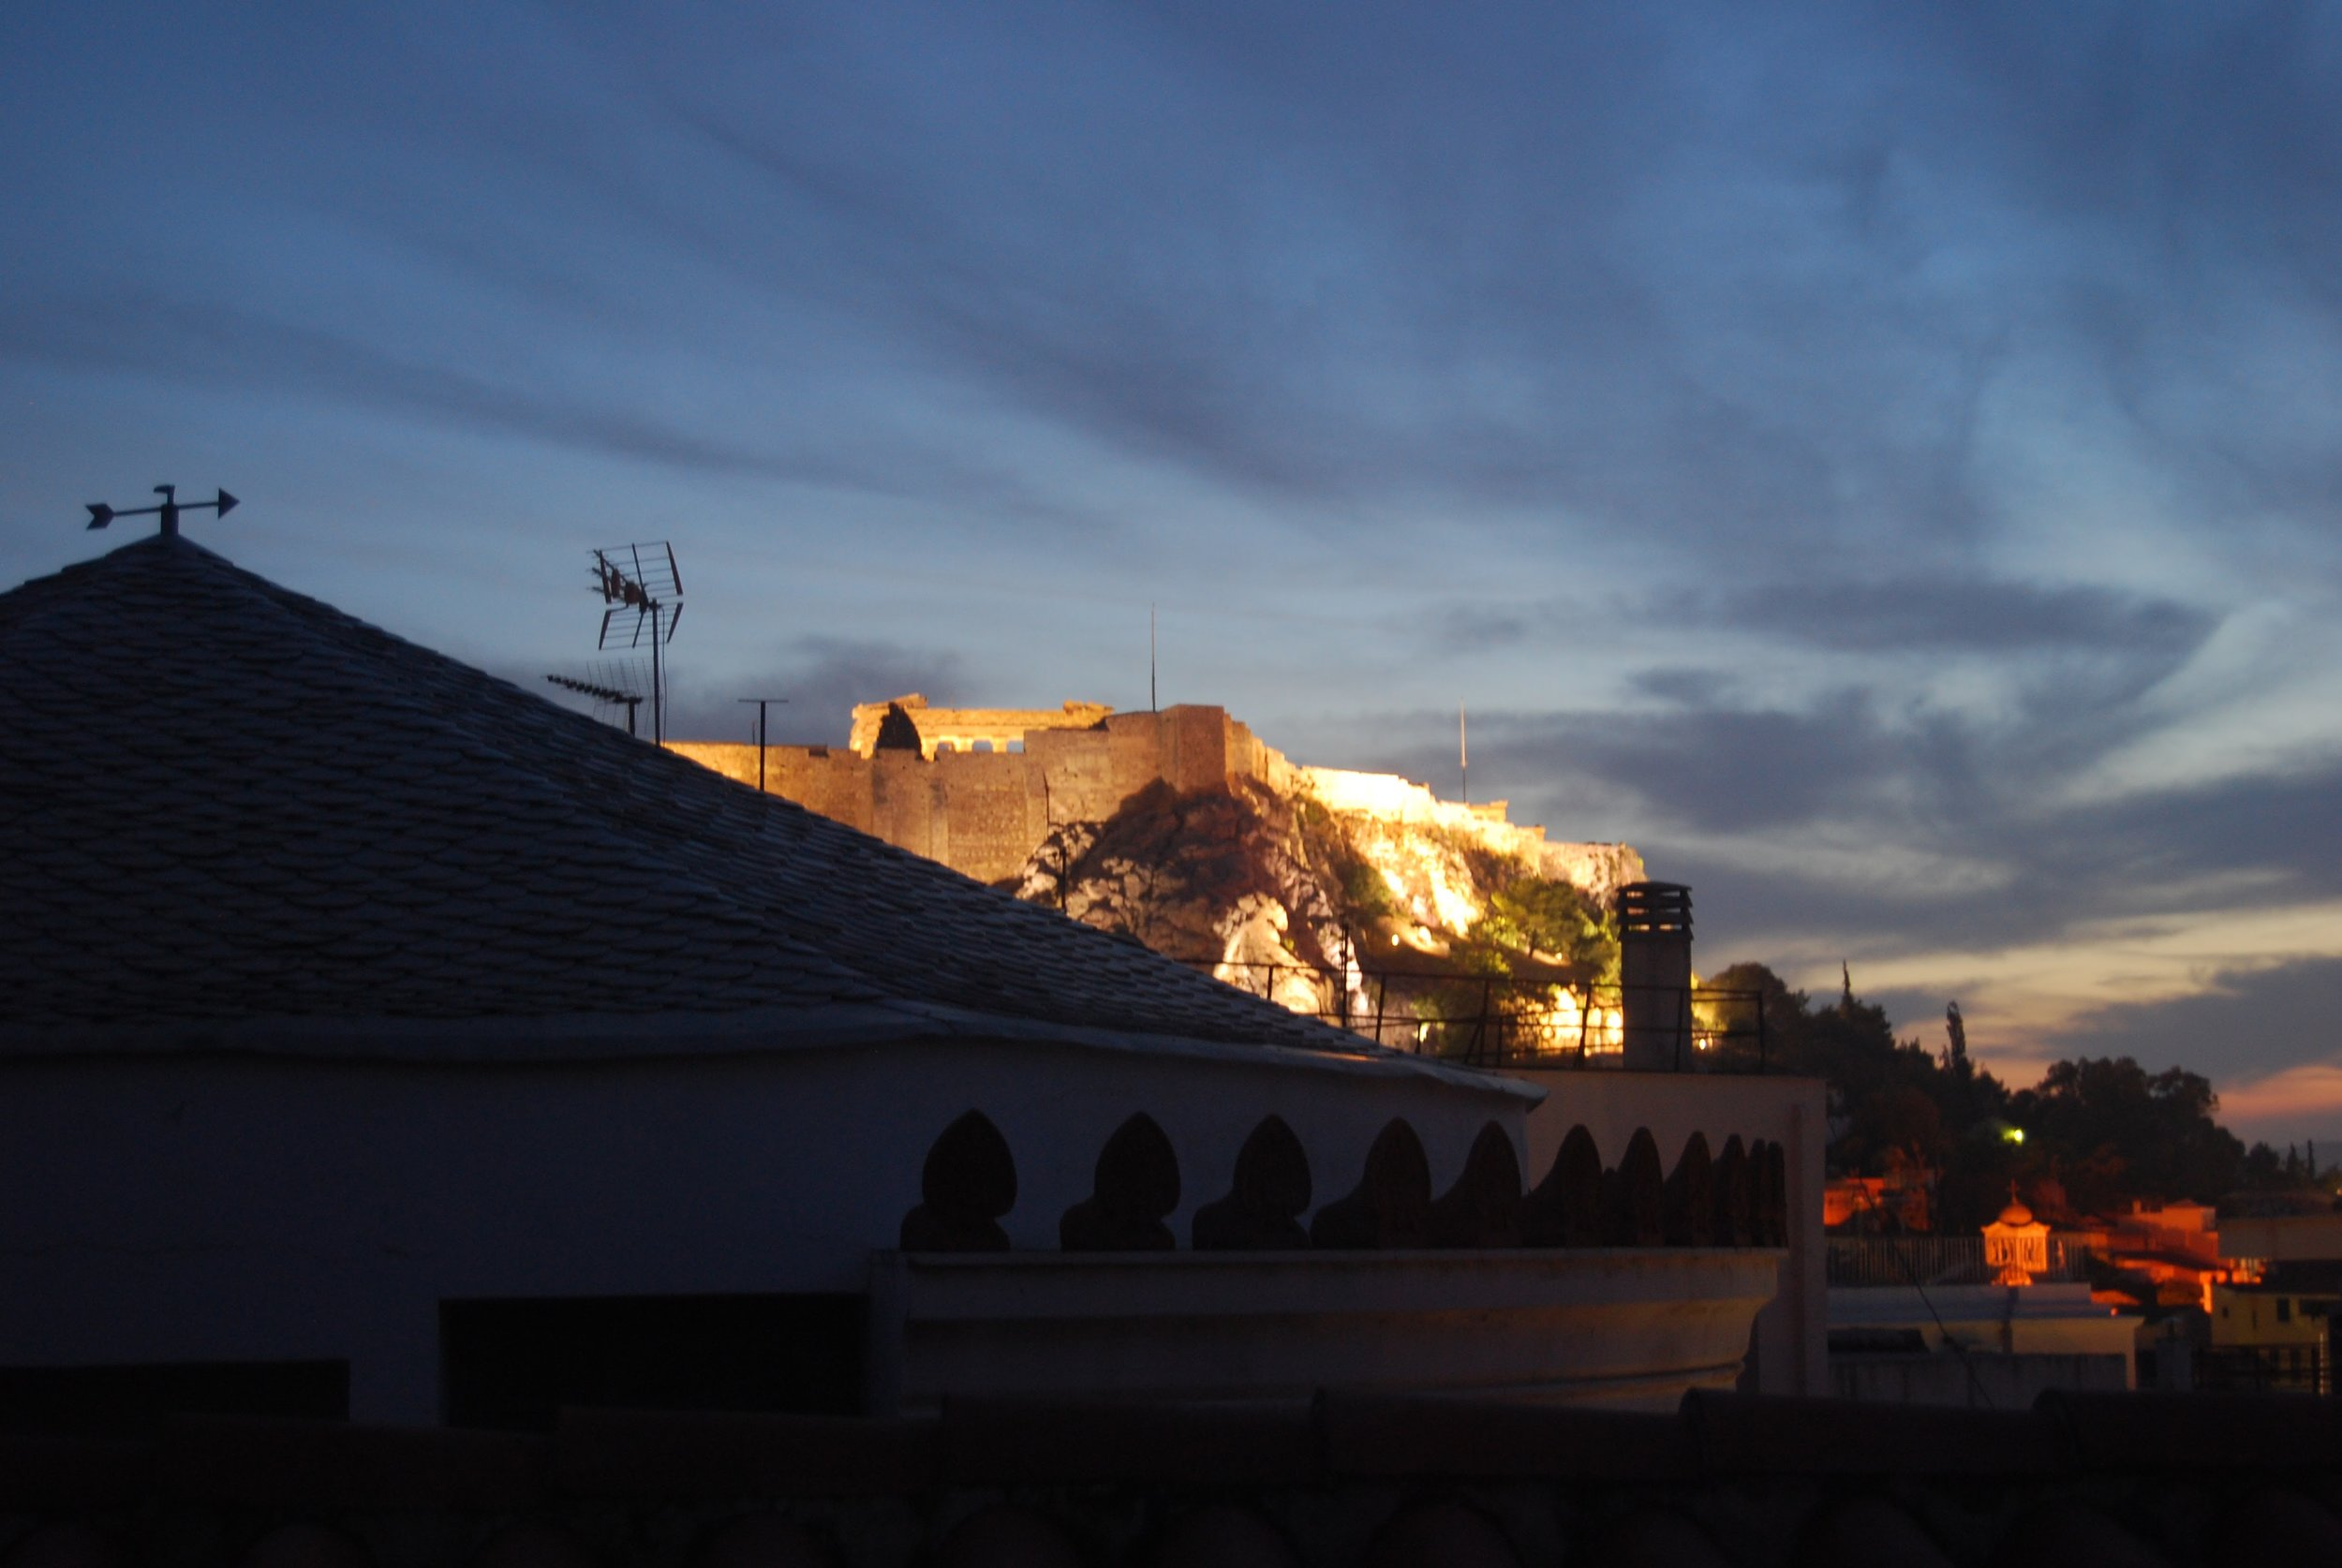 The view from the rooftop of the Alice Inn, one of my favorite hotels in Athens.